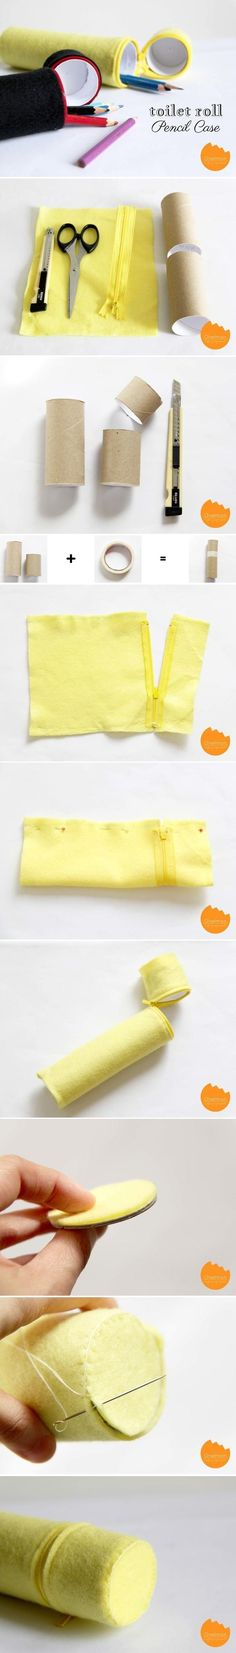 7. Toilet Paper Roll Pencil Case | 10 DIY Pencil Cases.